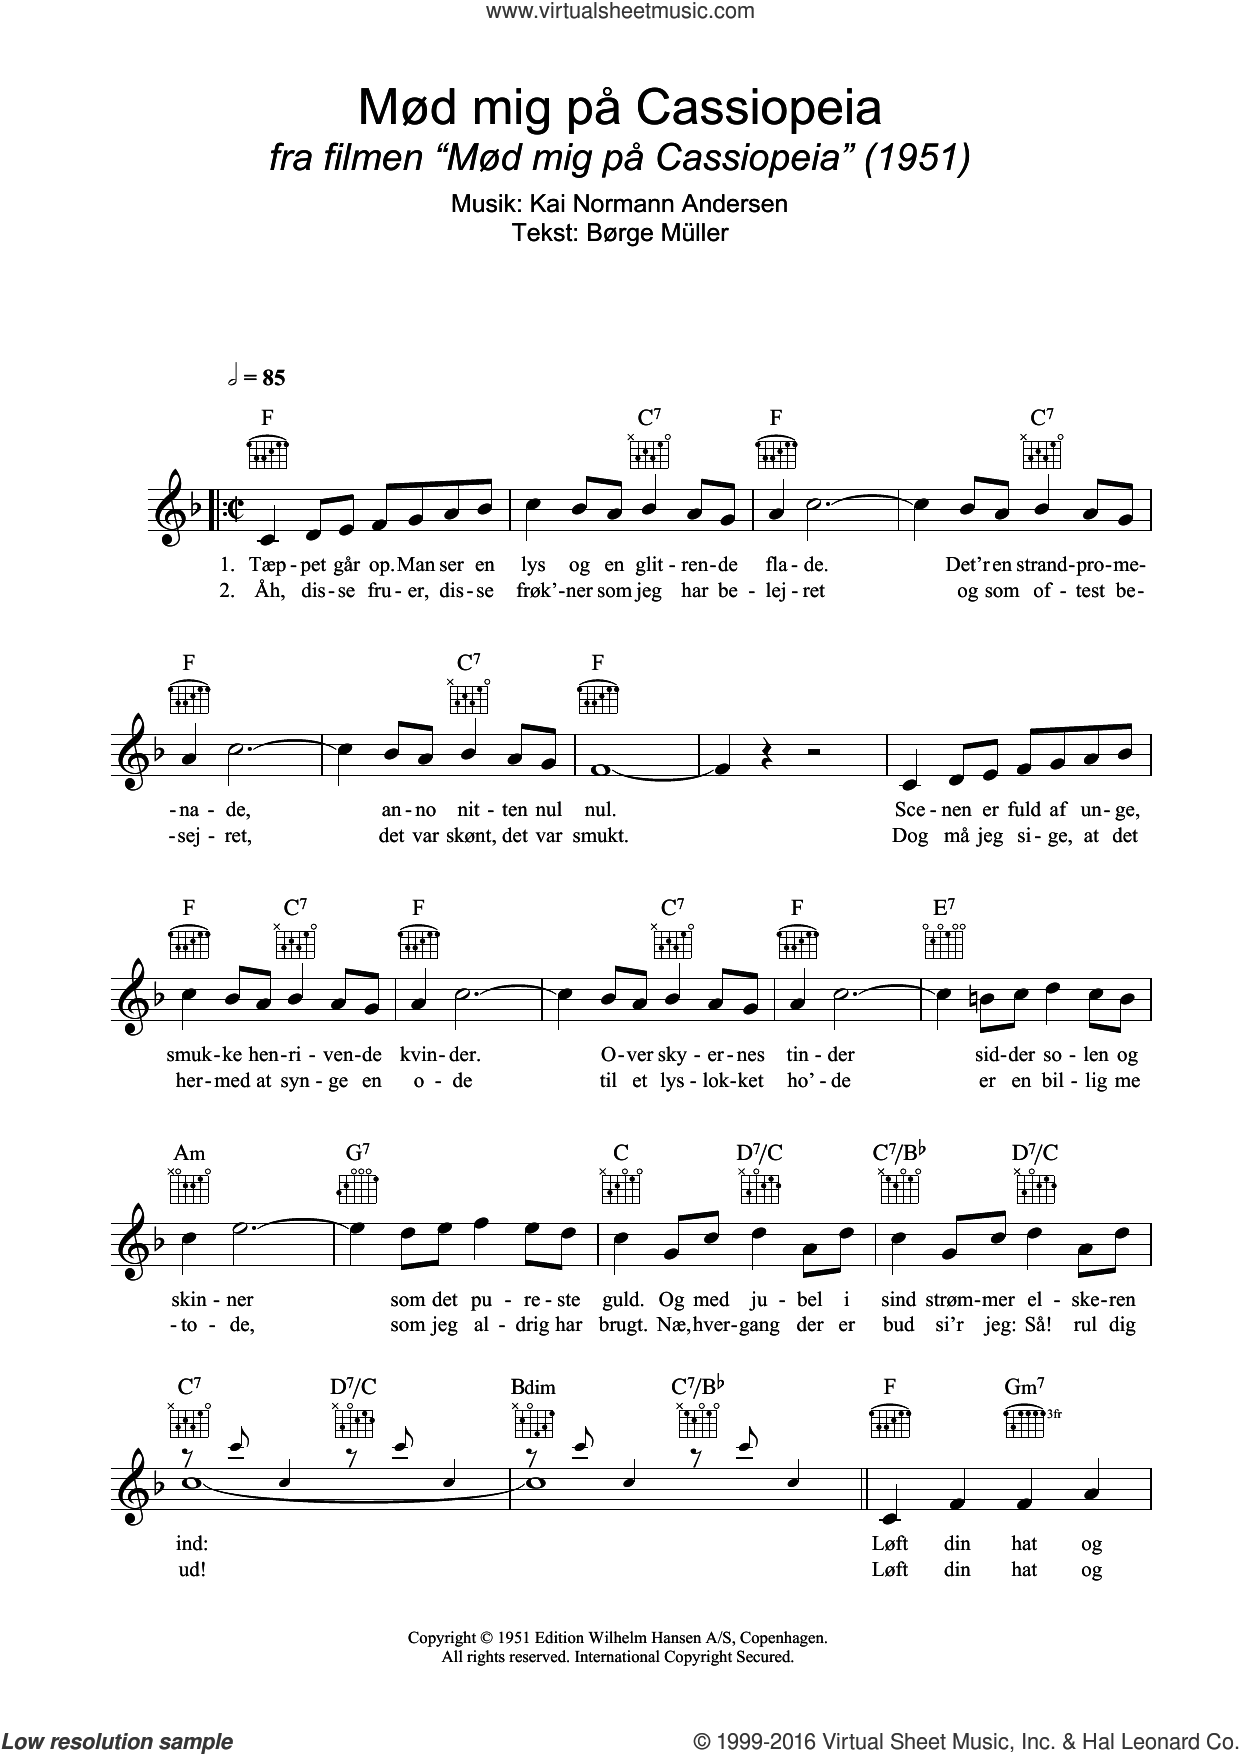 Loft Din Hat Og Sving Din Stok sheet music for voice and other instruments (fake book) by Børge Müller and Kai Normann Andersen. Score Image Preview.